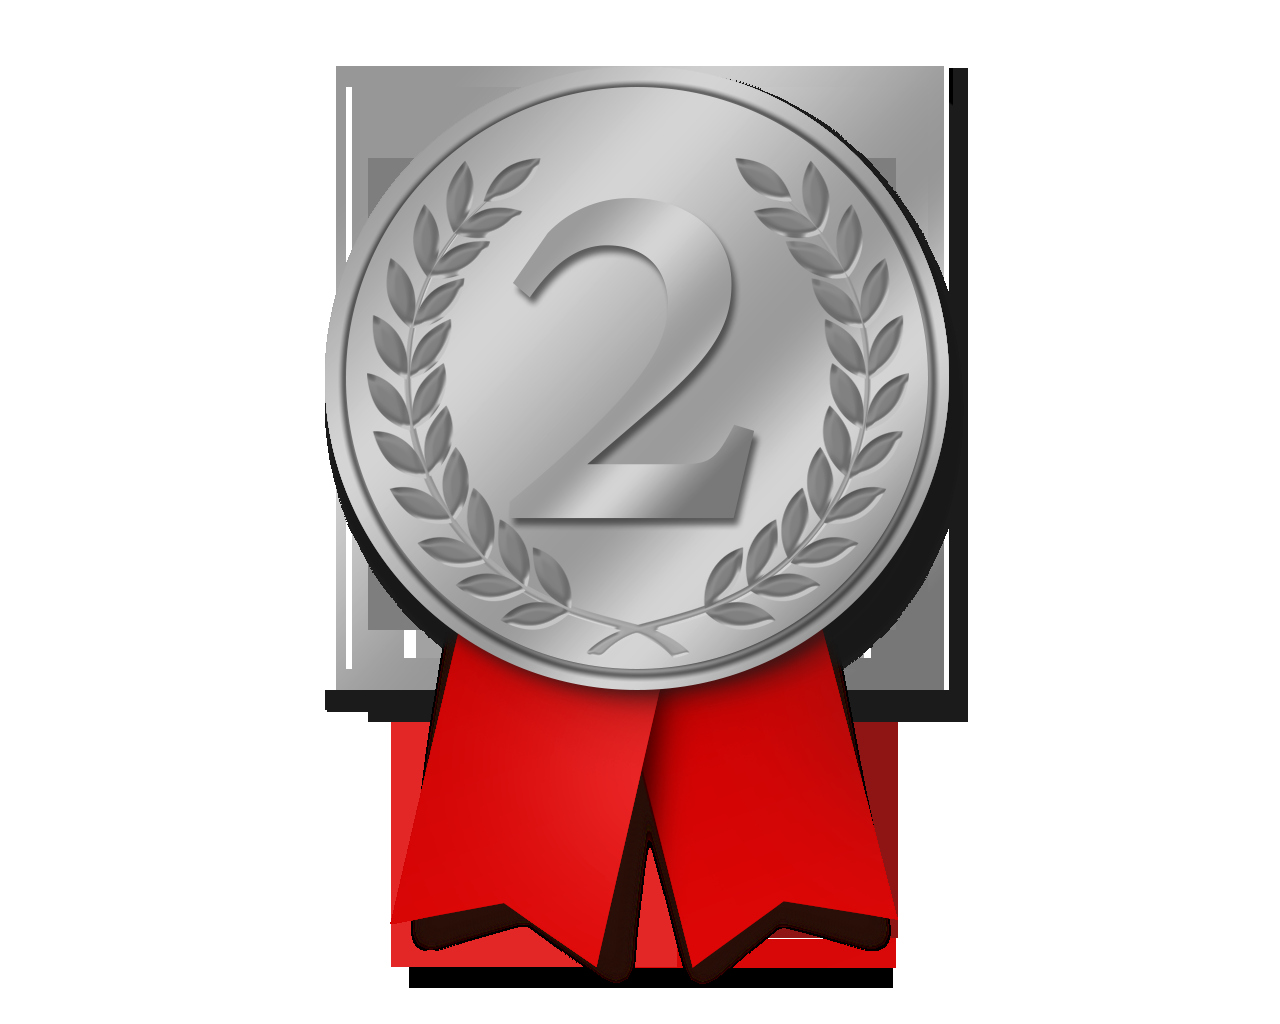 2nd Place Ribbon Png Luxury Download Silver Medal Png File Free Transparent Png